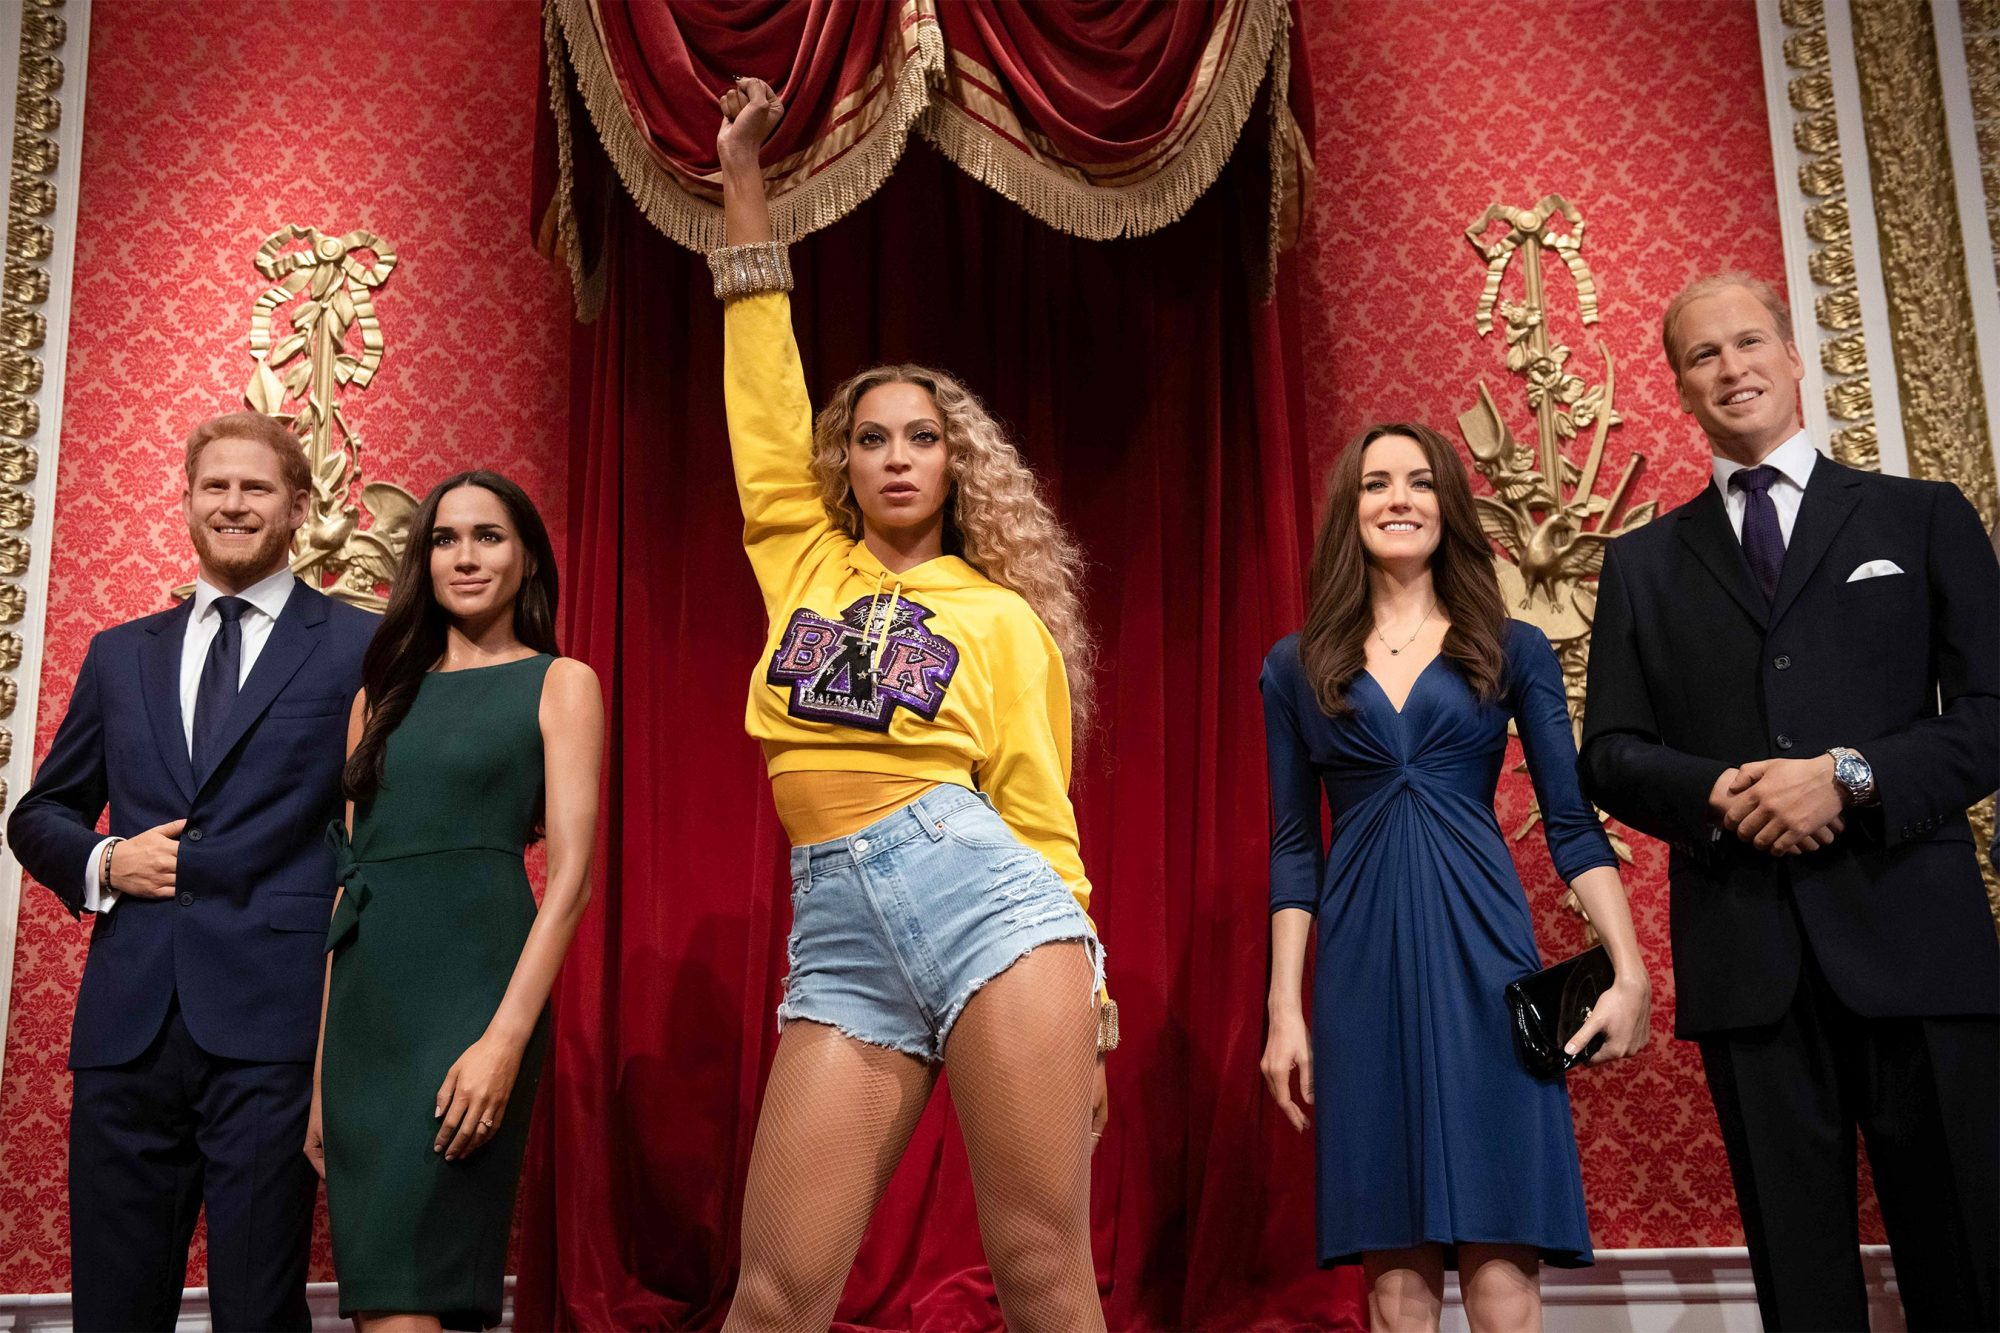 Beyonce's wax figure has joined England's royal family at Madame Tussauds    EW.com